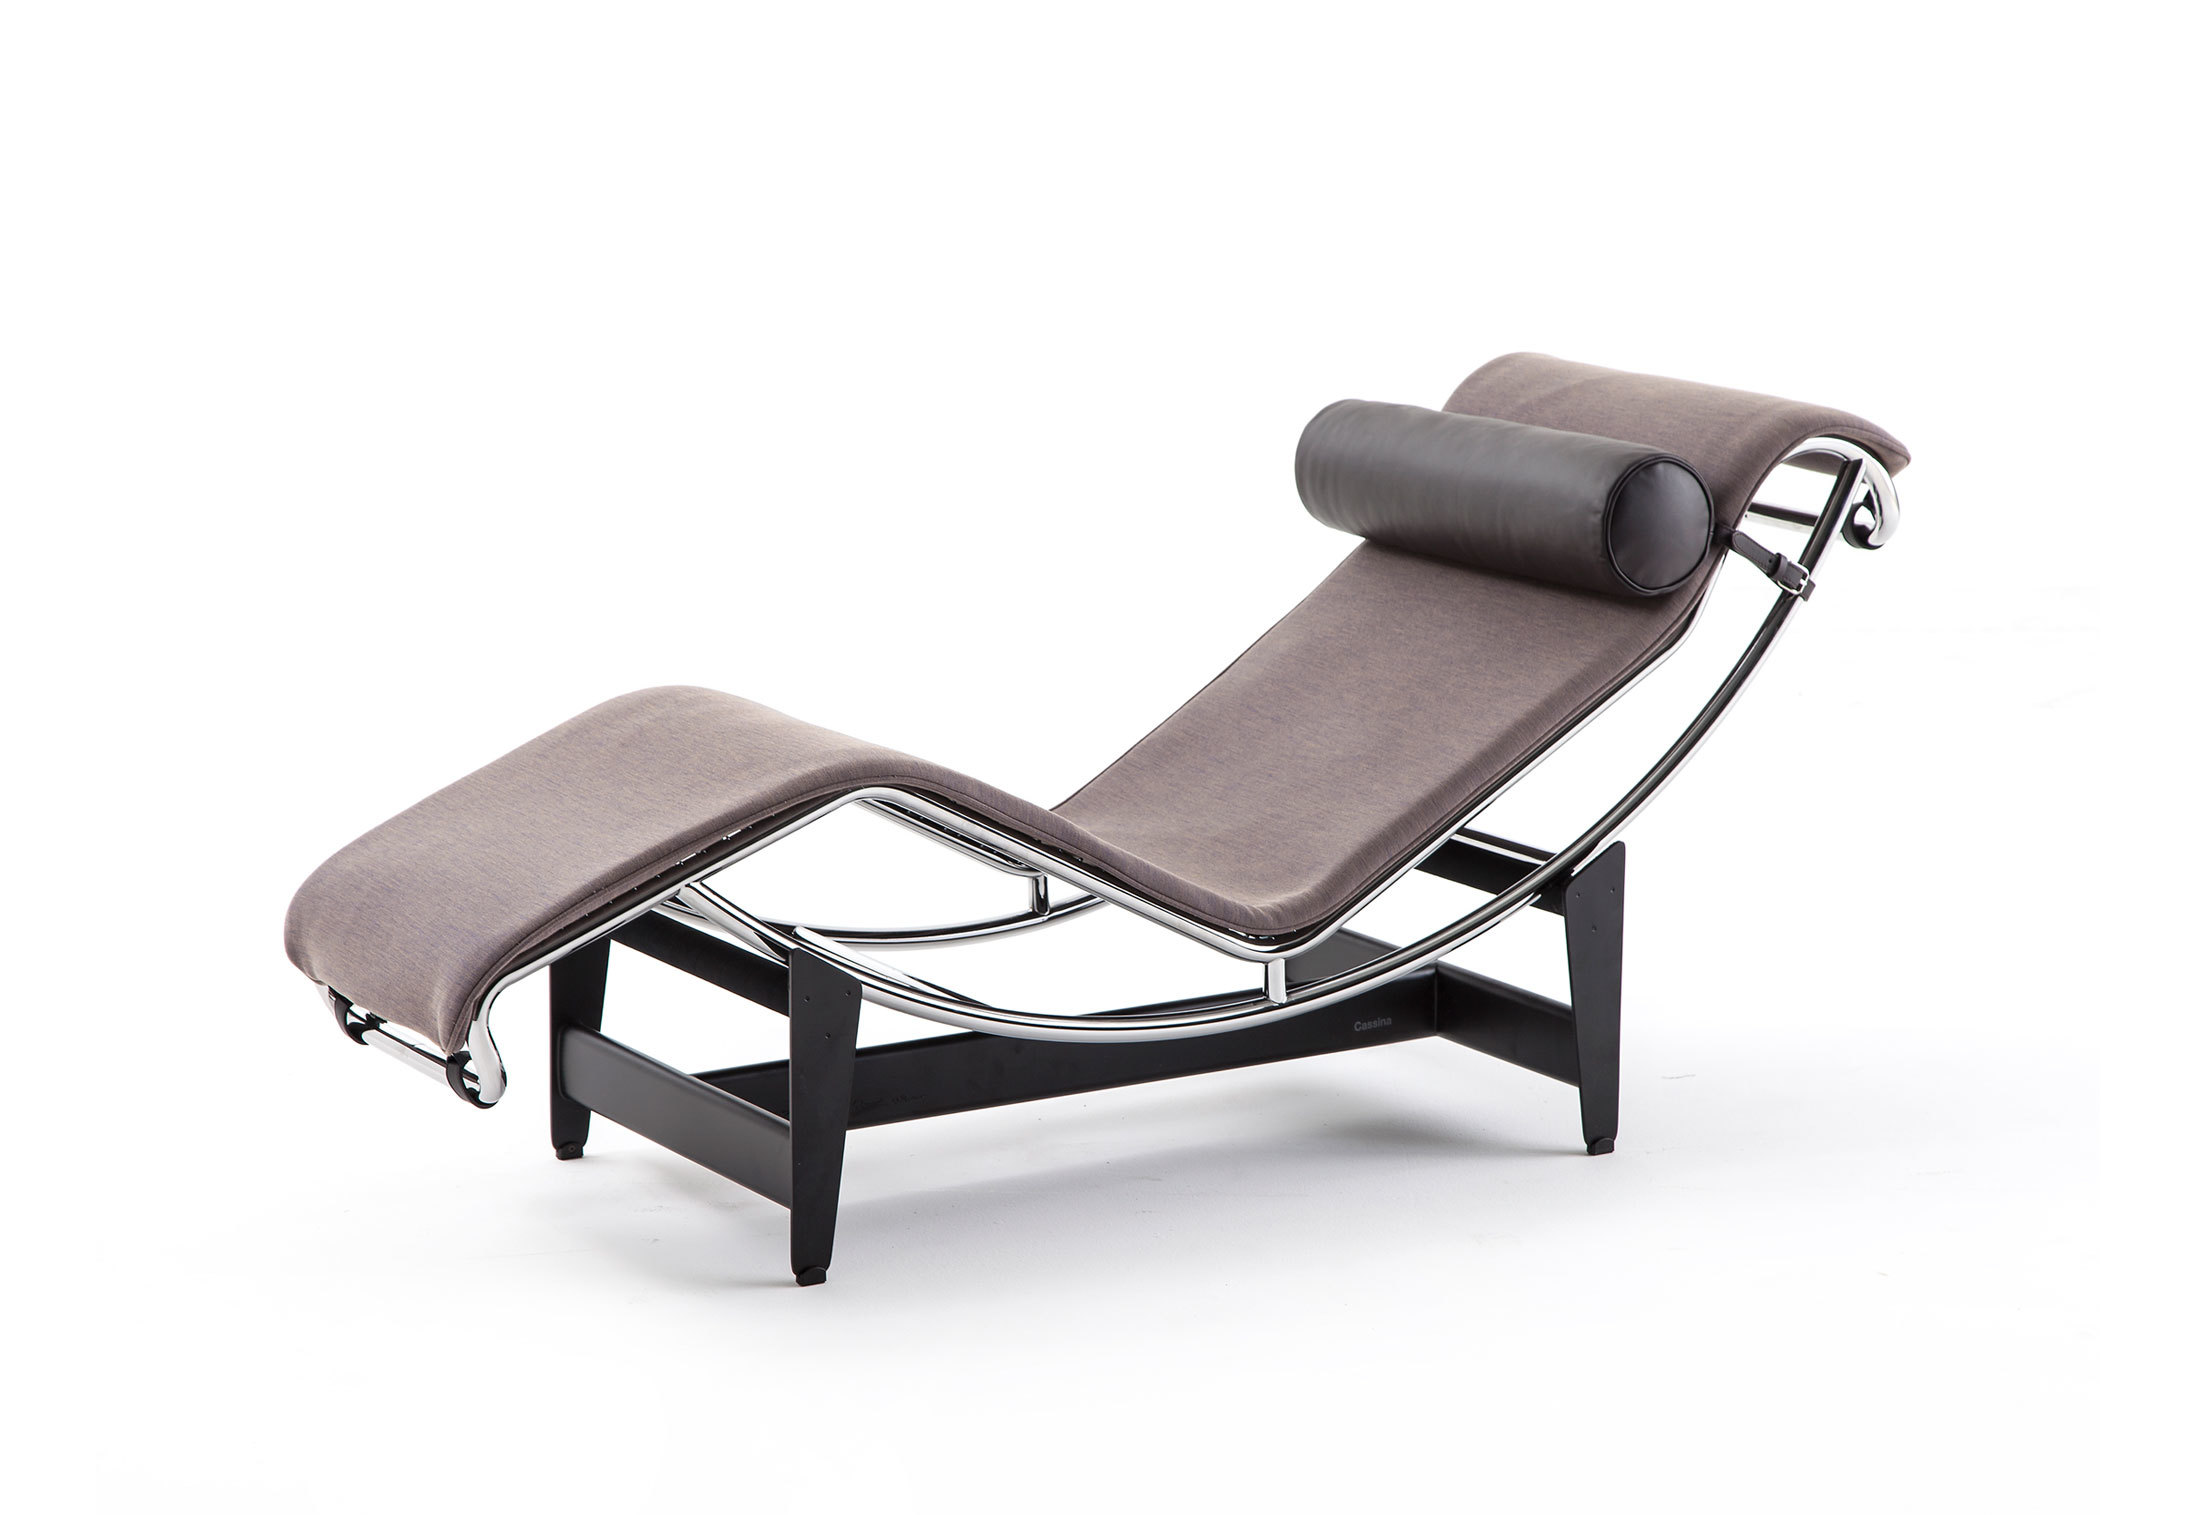 Lc4 villa church chaise longue by cassina stylepark for Chaise longue cassina